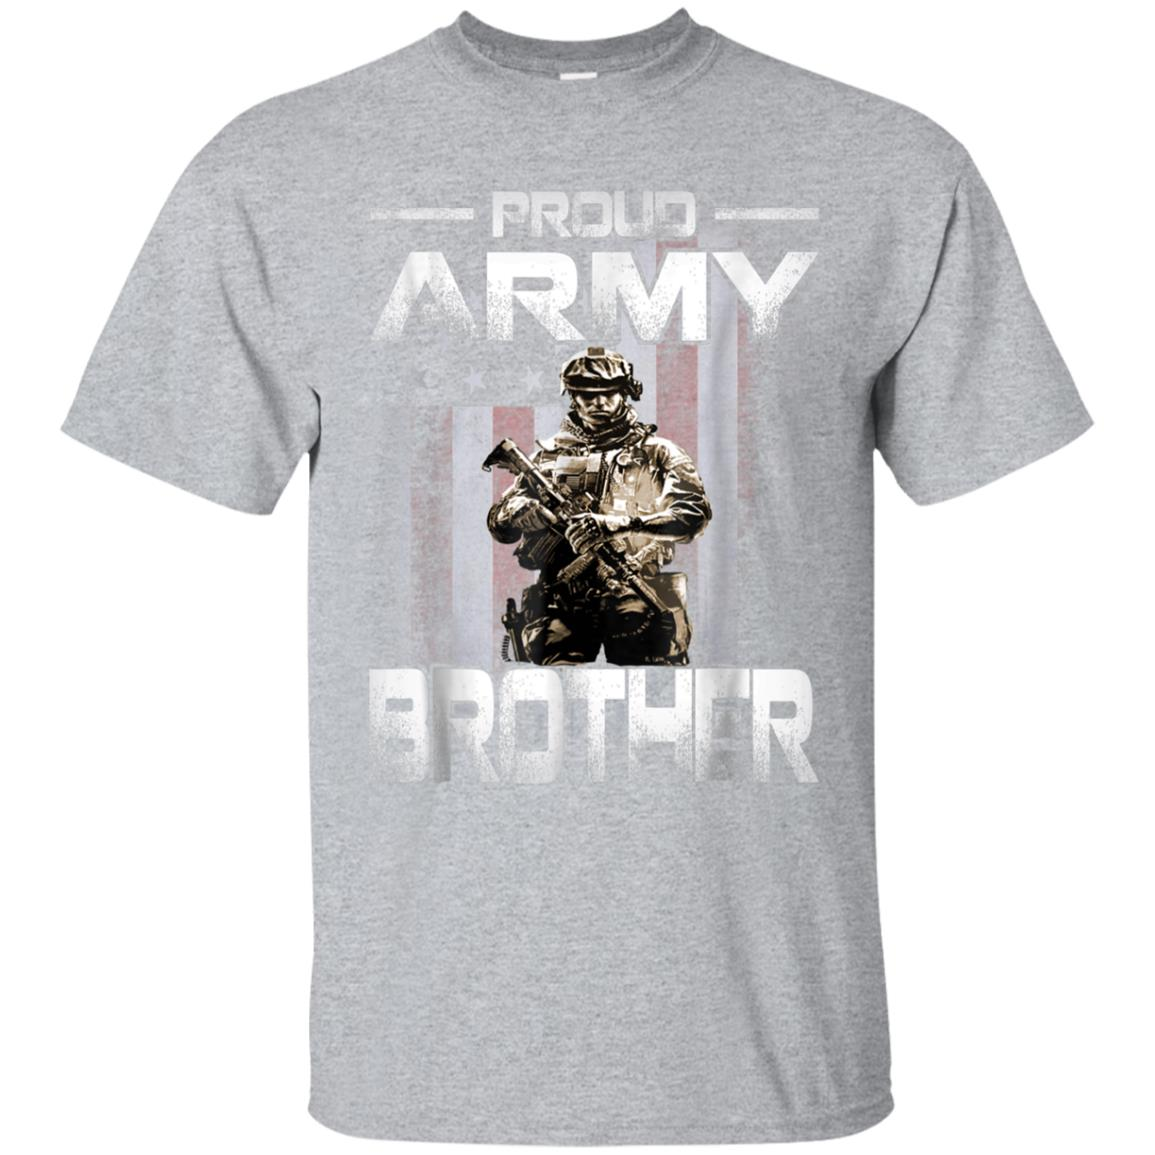 9dc0d06a Awesome proud army brother shirt us military family gift t shirt ...